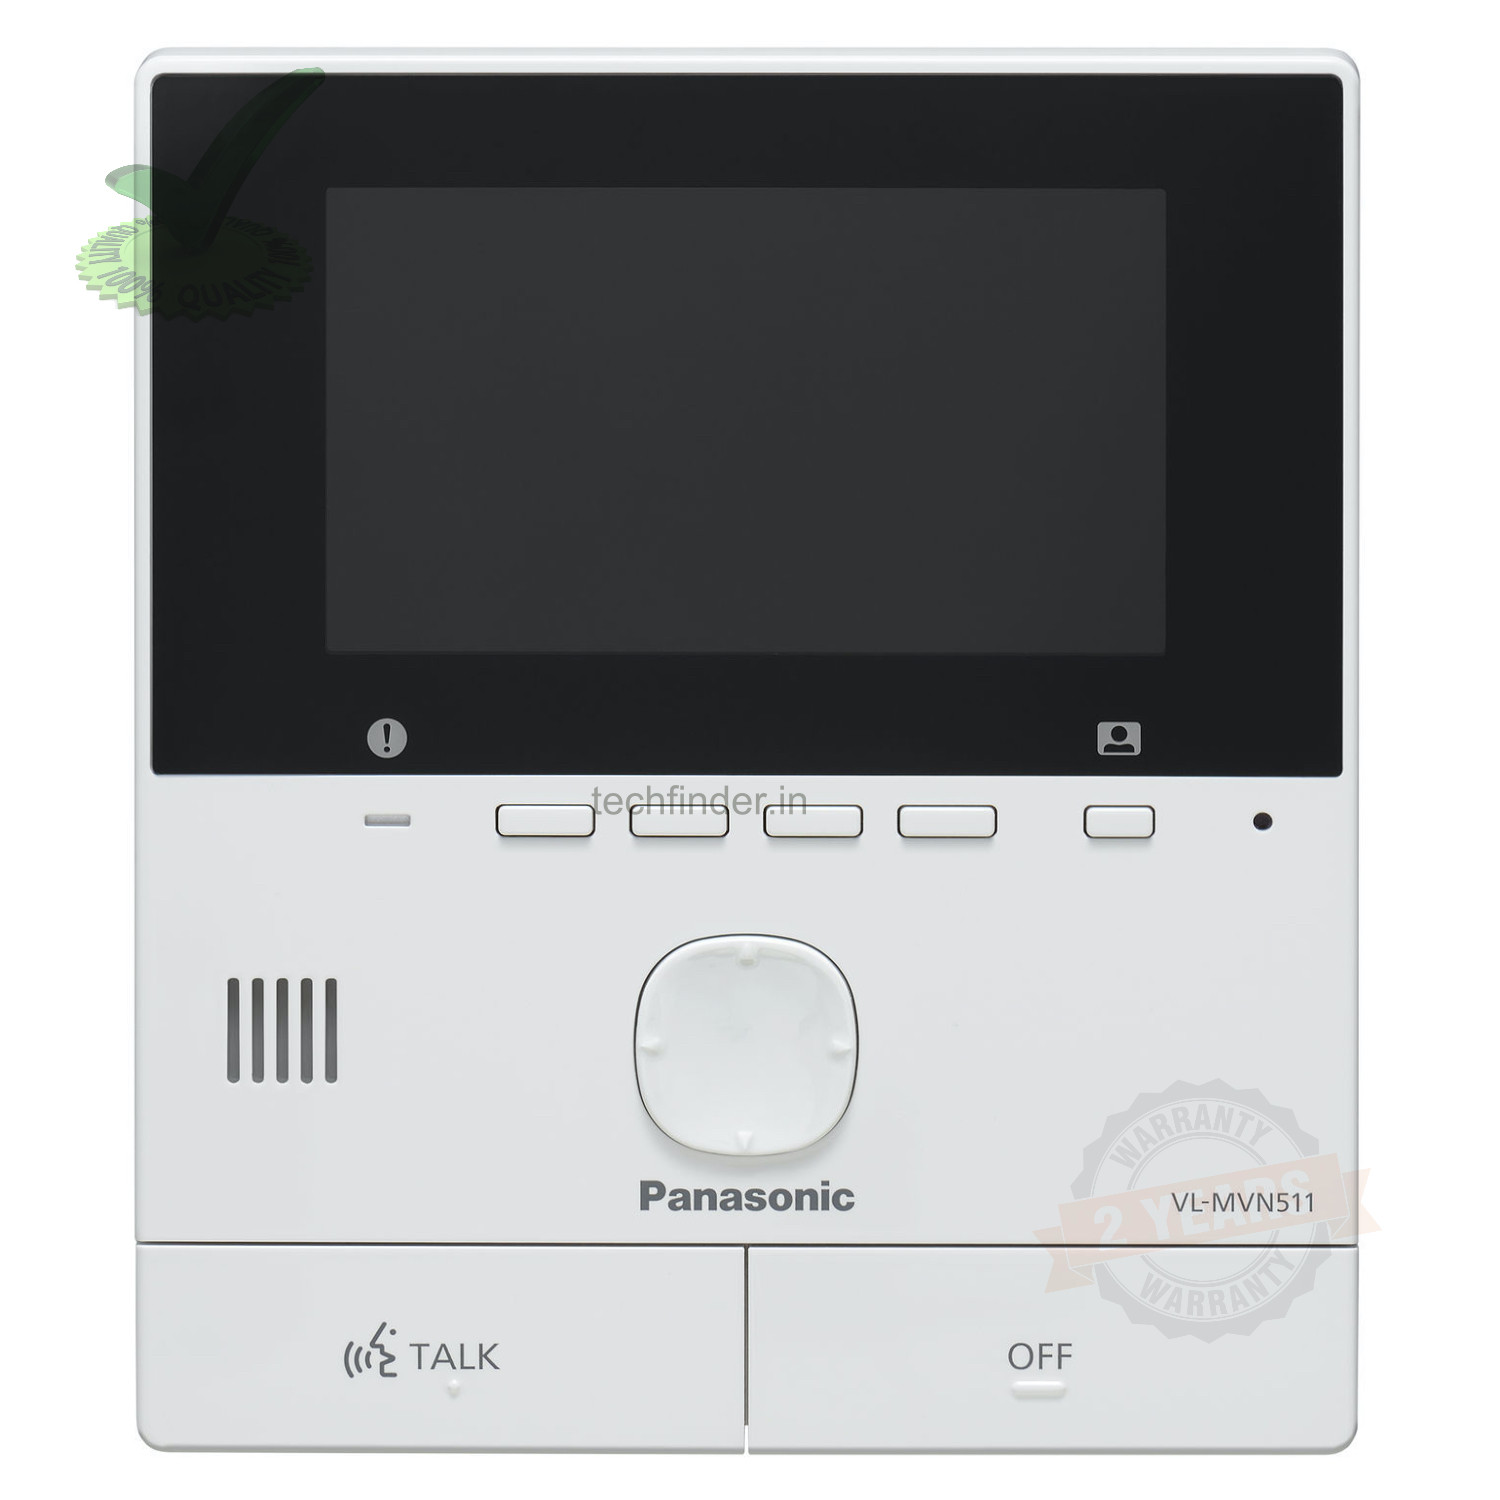 Panasonic Video Intercom System VL-SVN511